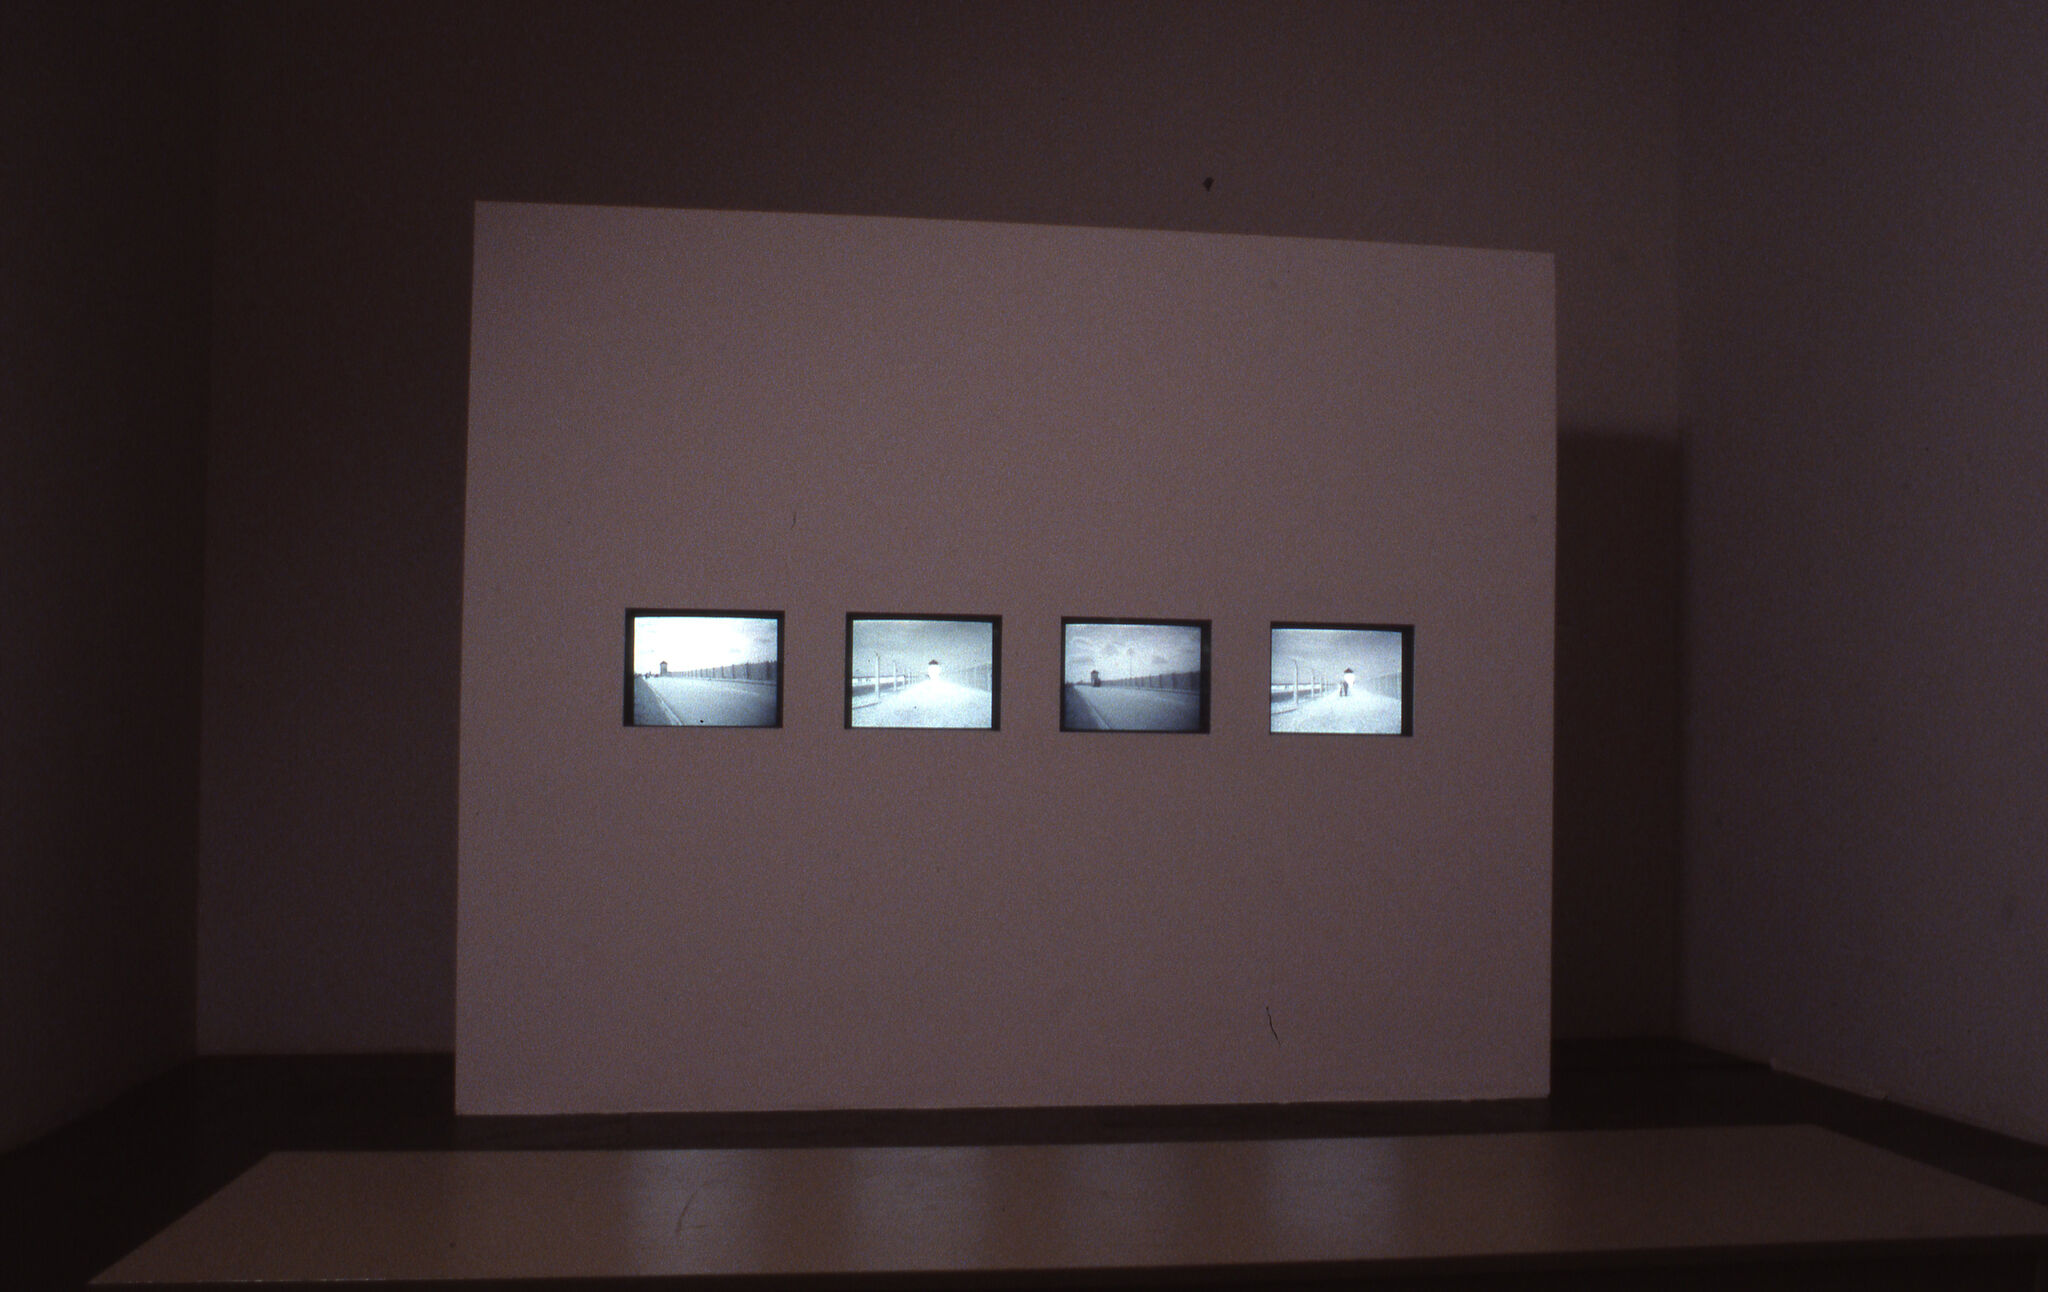 A white wall with a row of four screens displaying black and white views of streets.